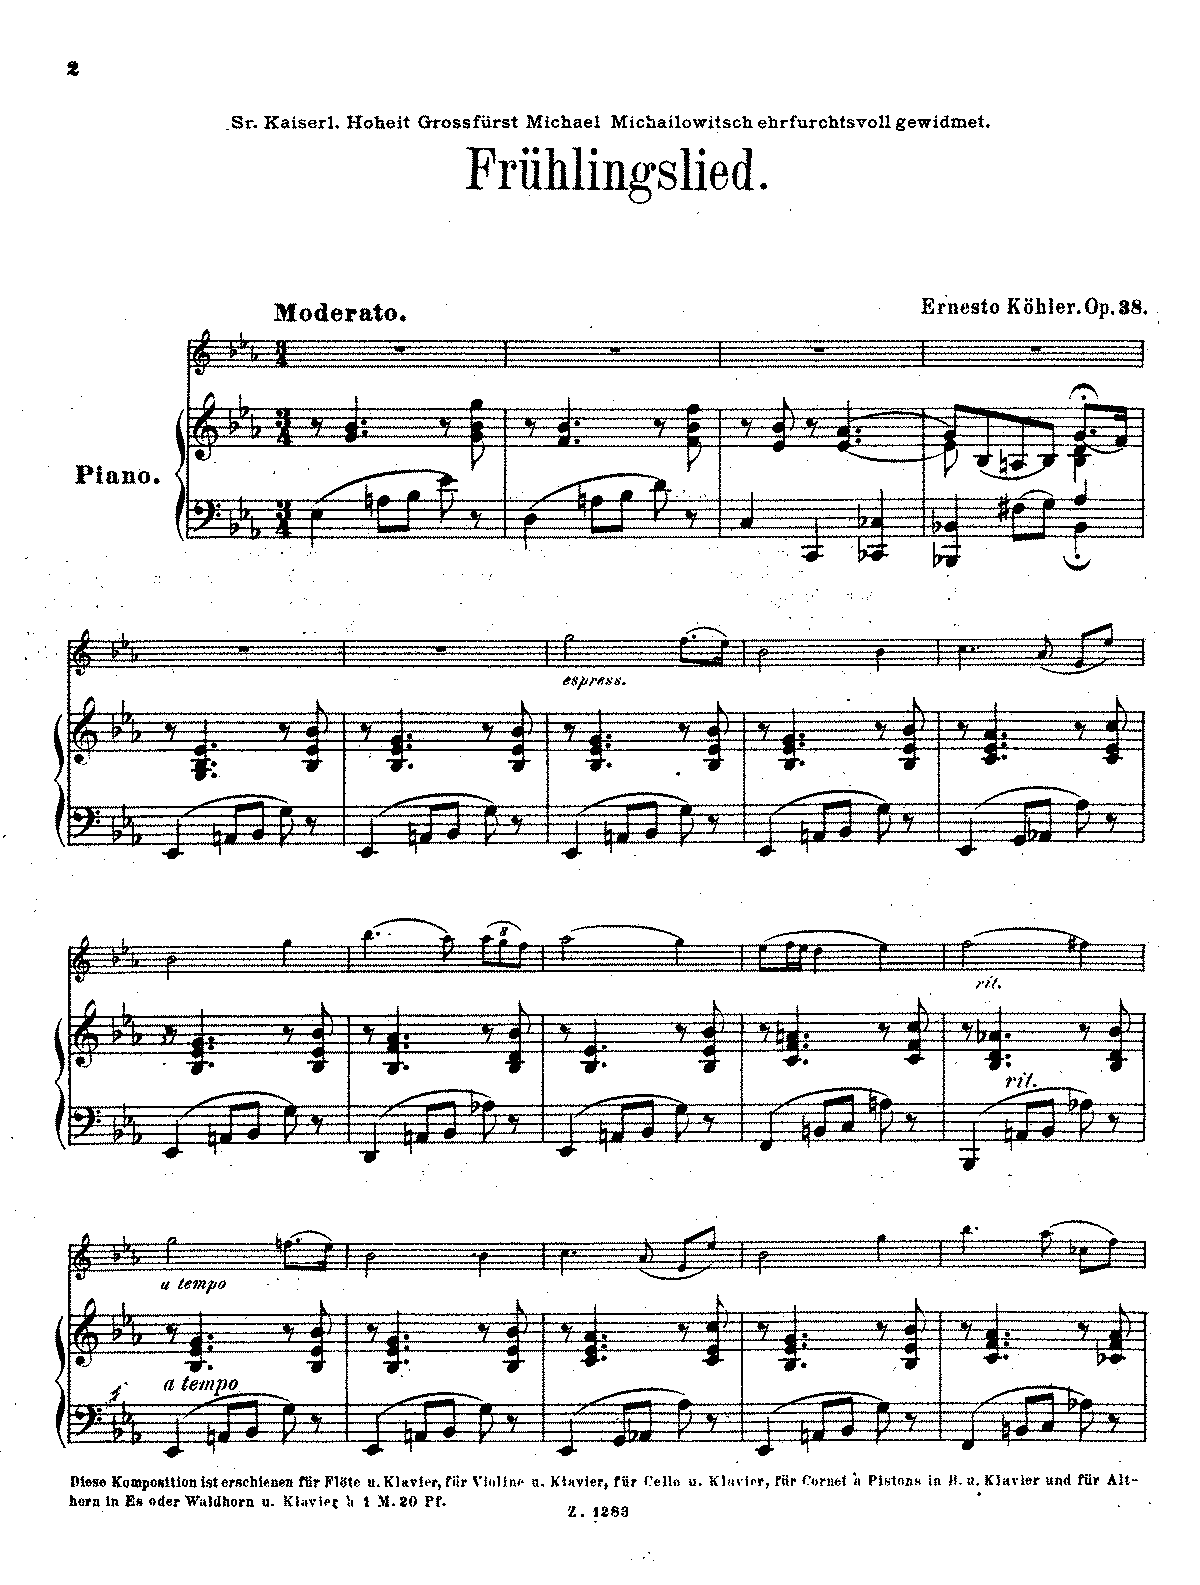 PMLP96759-Kohler - Fruhlingslied Op38 violin (flute)(Cello) and piano.pdf